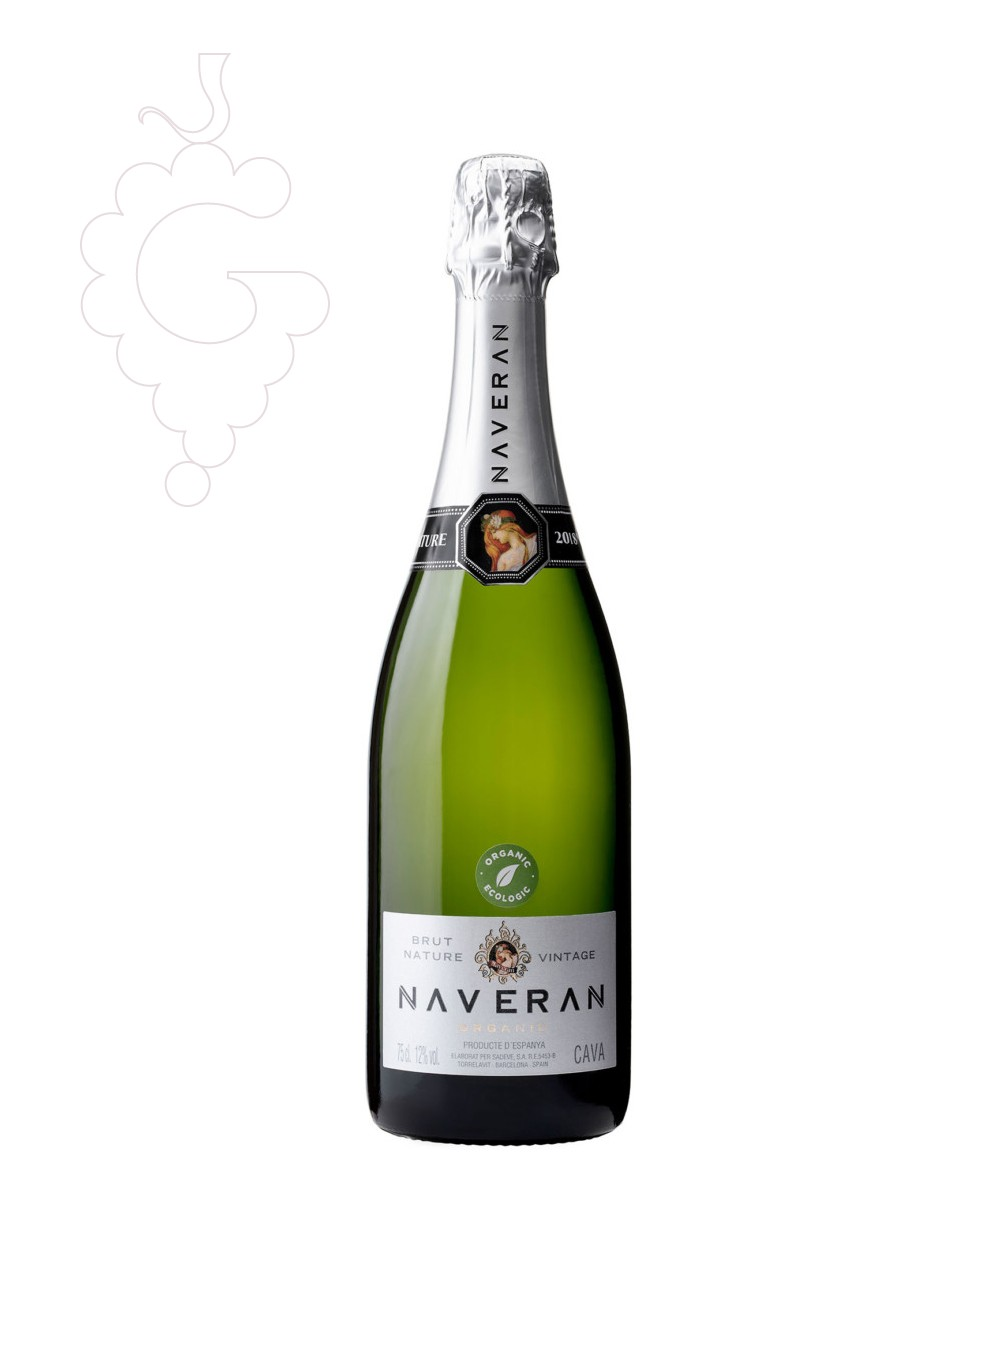 Photo Naveran Brut Nature Vintage sparkling wine